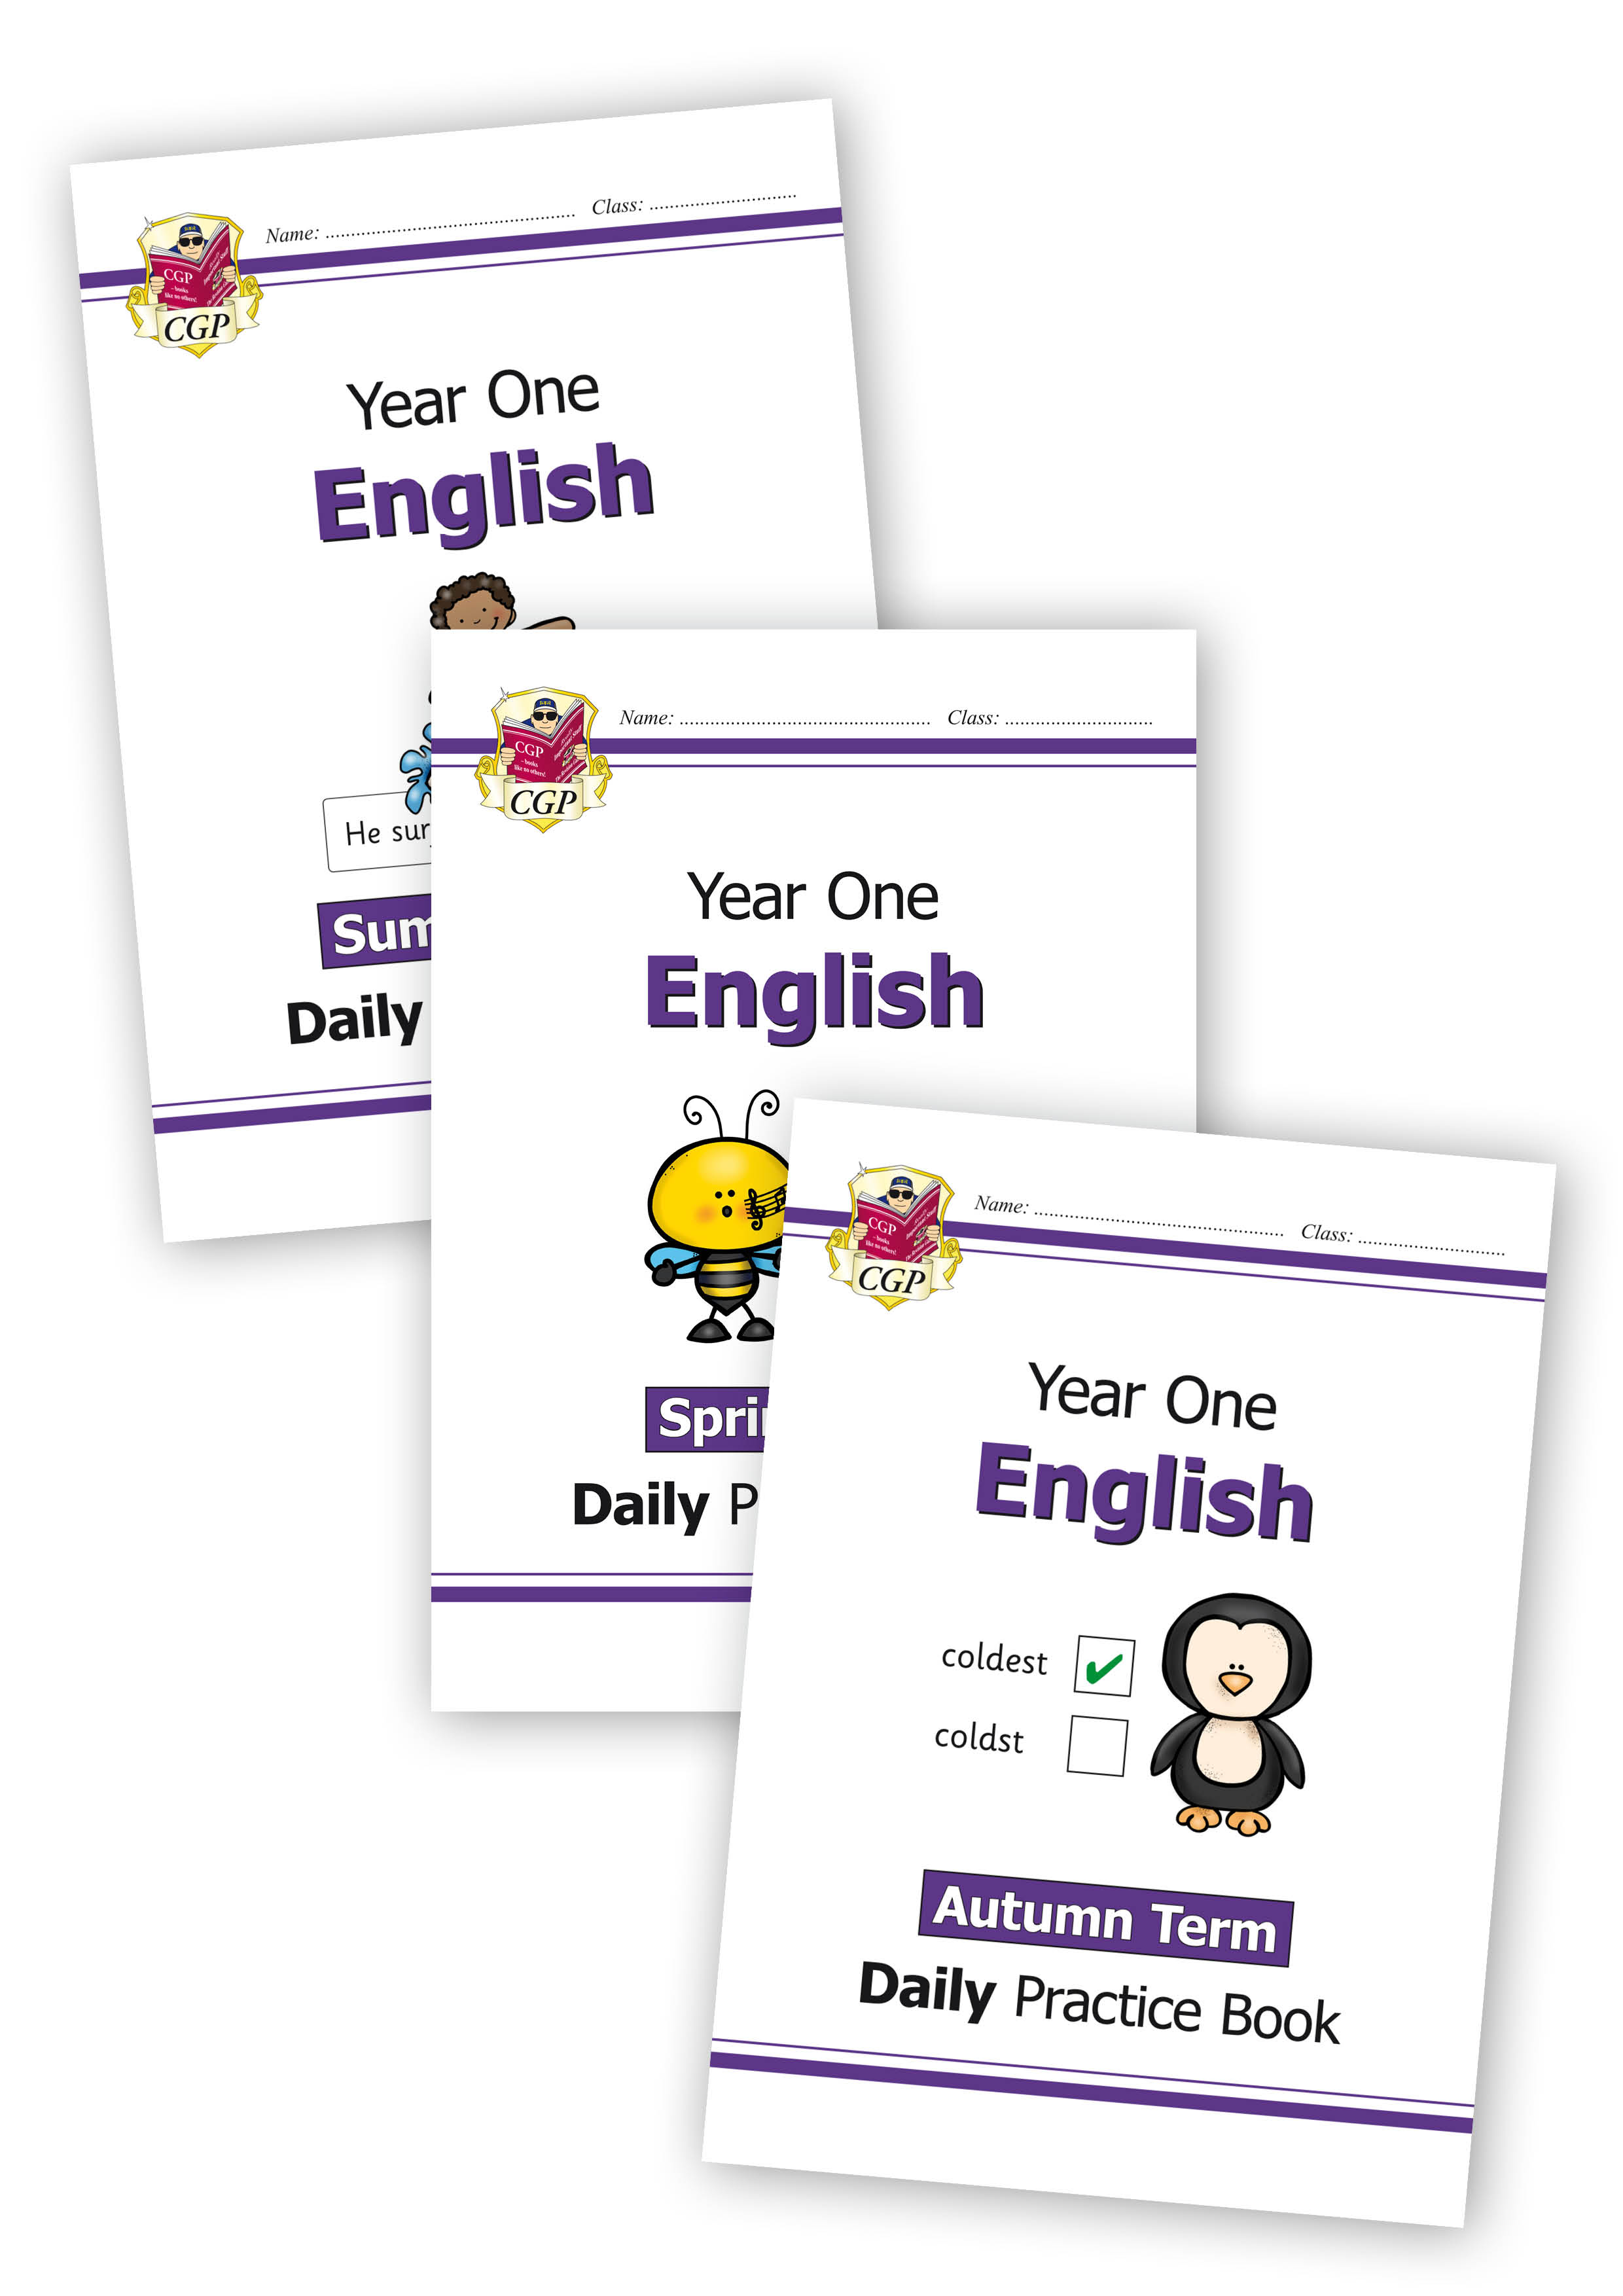 E1WB11 - New KS1 English Daily Practice Book Bundle: Year 1 - Autumn Term, Spring Term & Summer Term